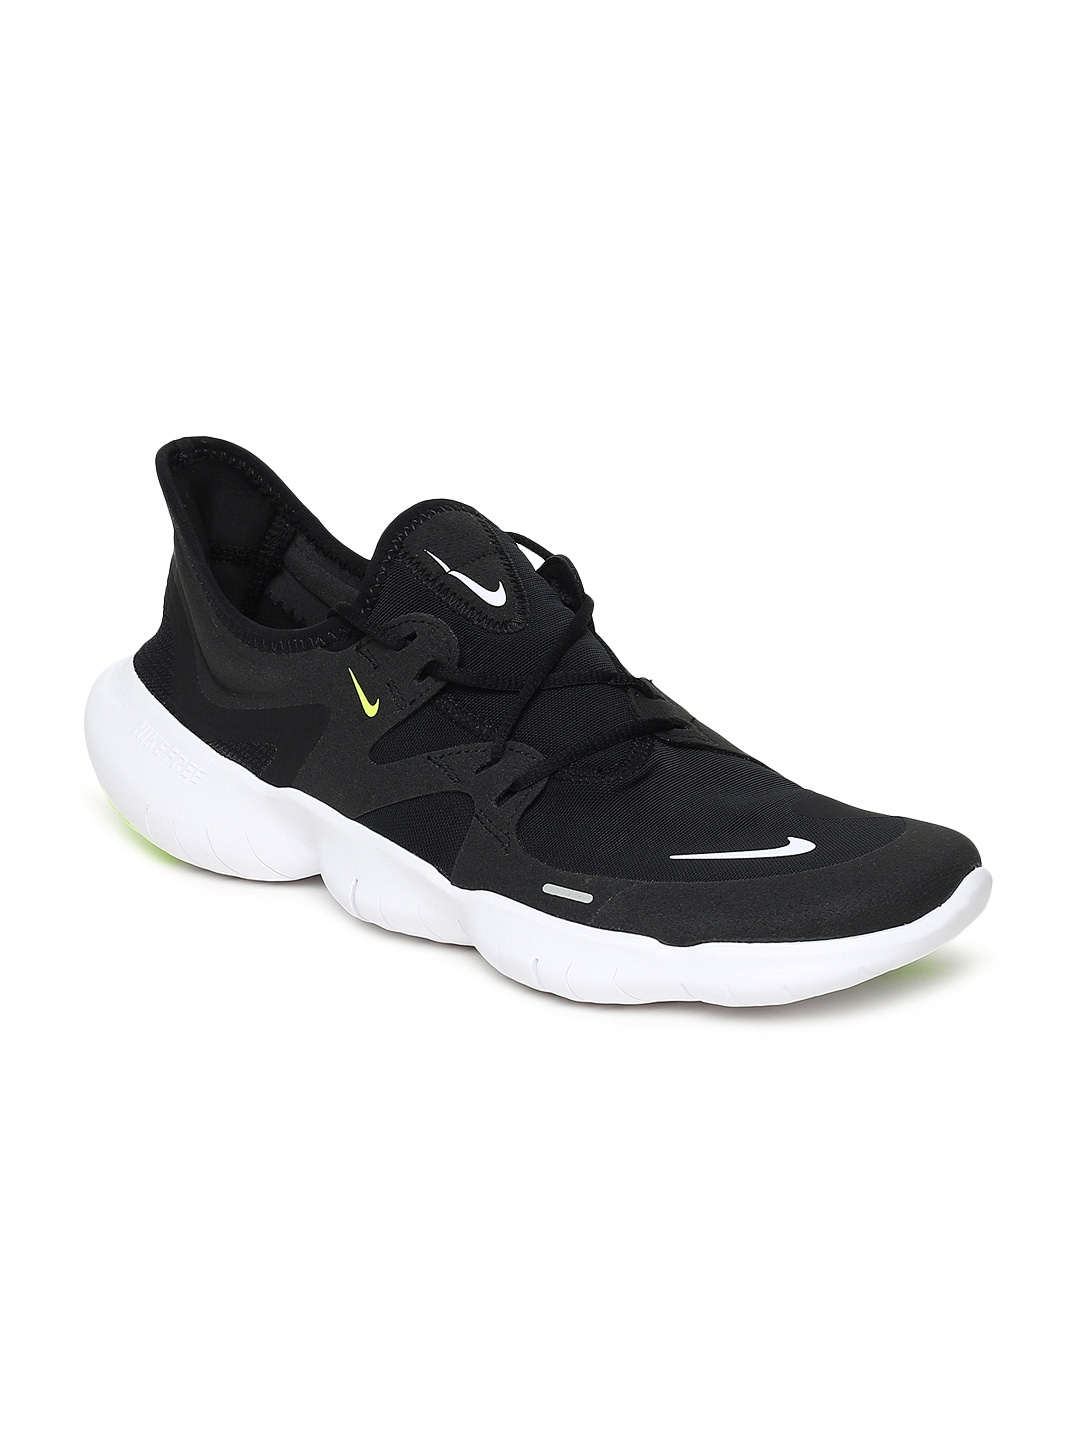 bf0795b308b10 Nike Shoes for Men - Buy Men s Nike Shoes Online